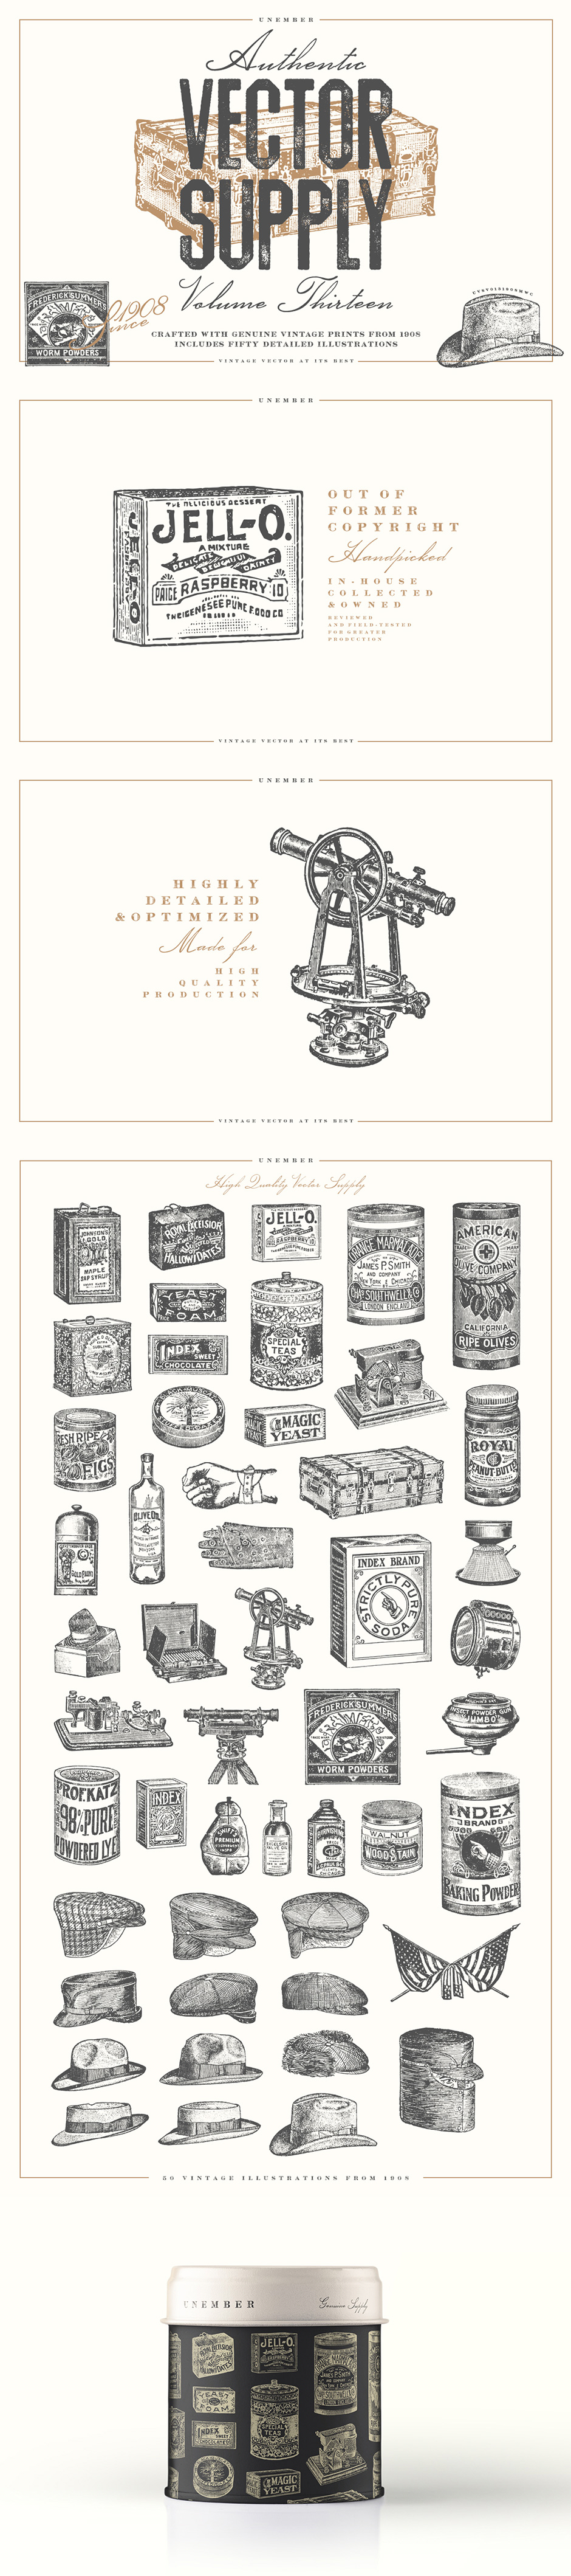 The Extensive Vector Elements Collection